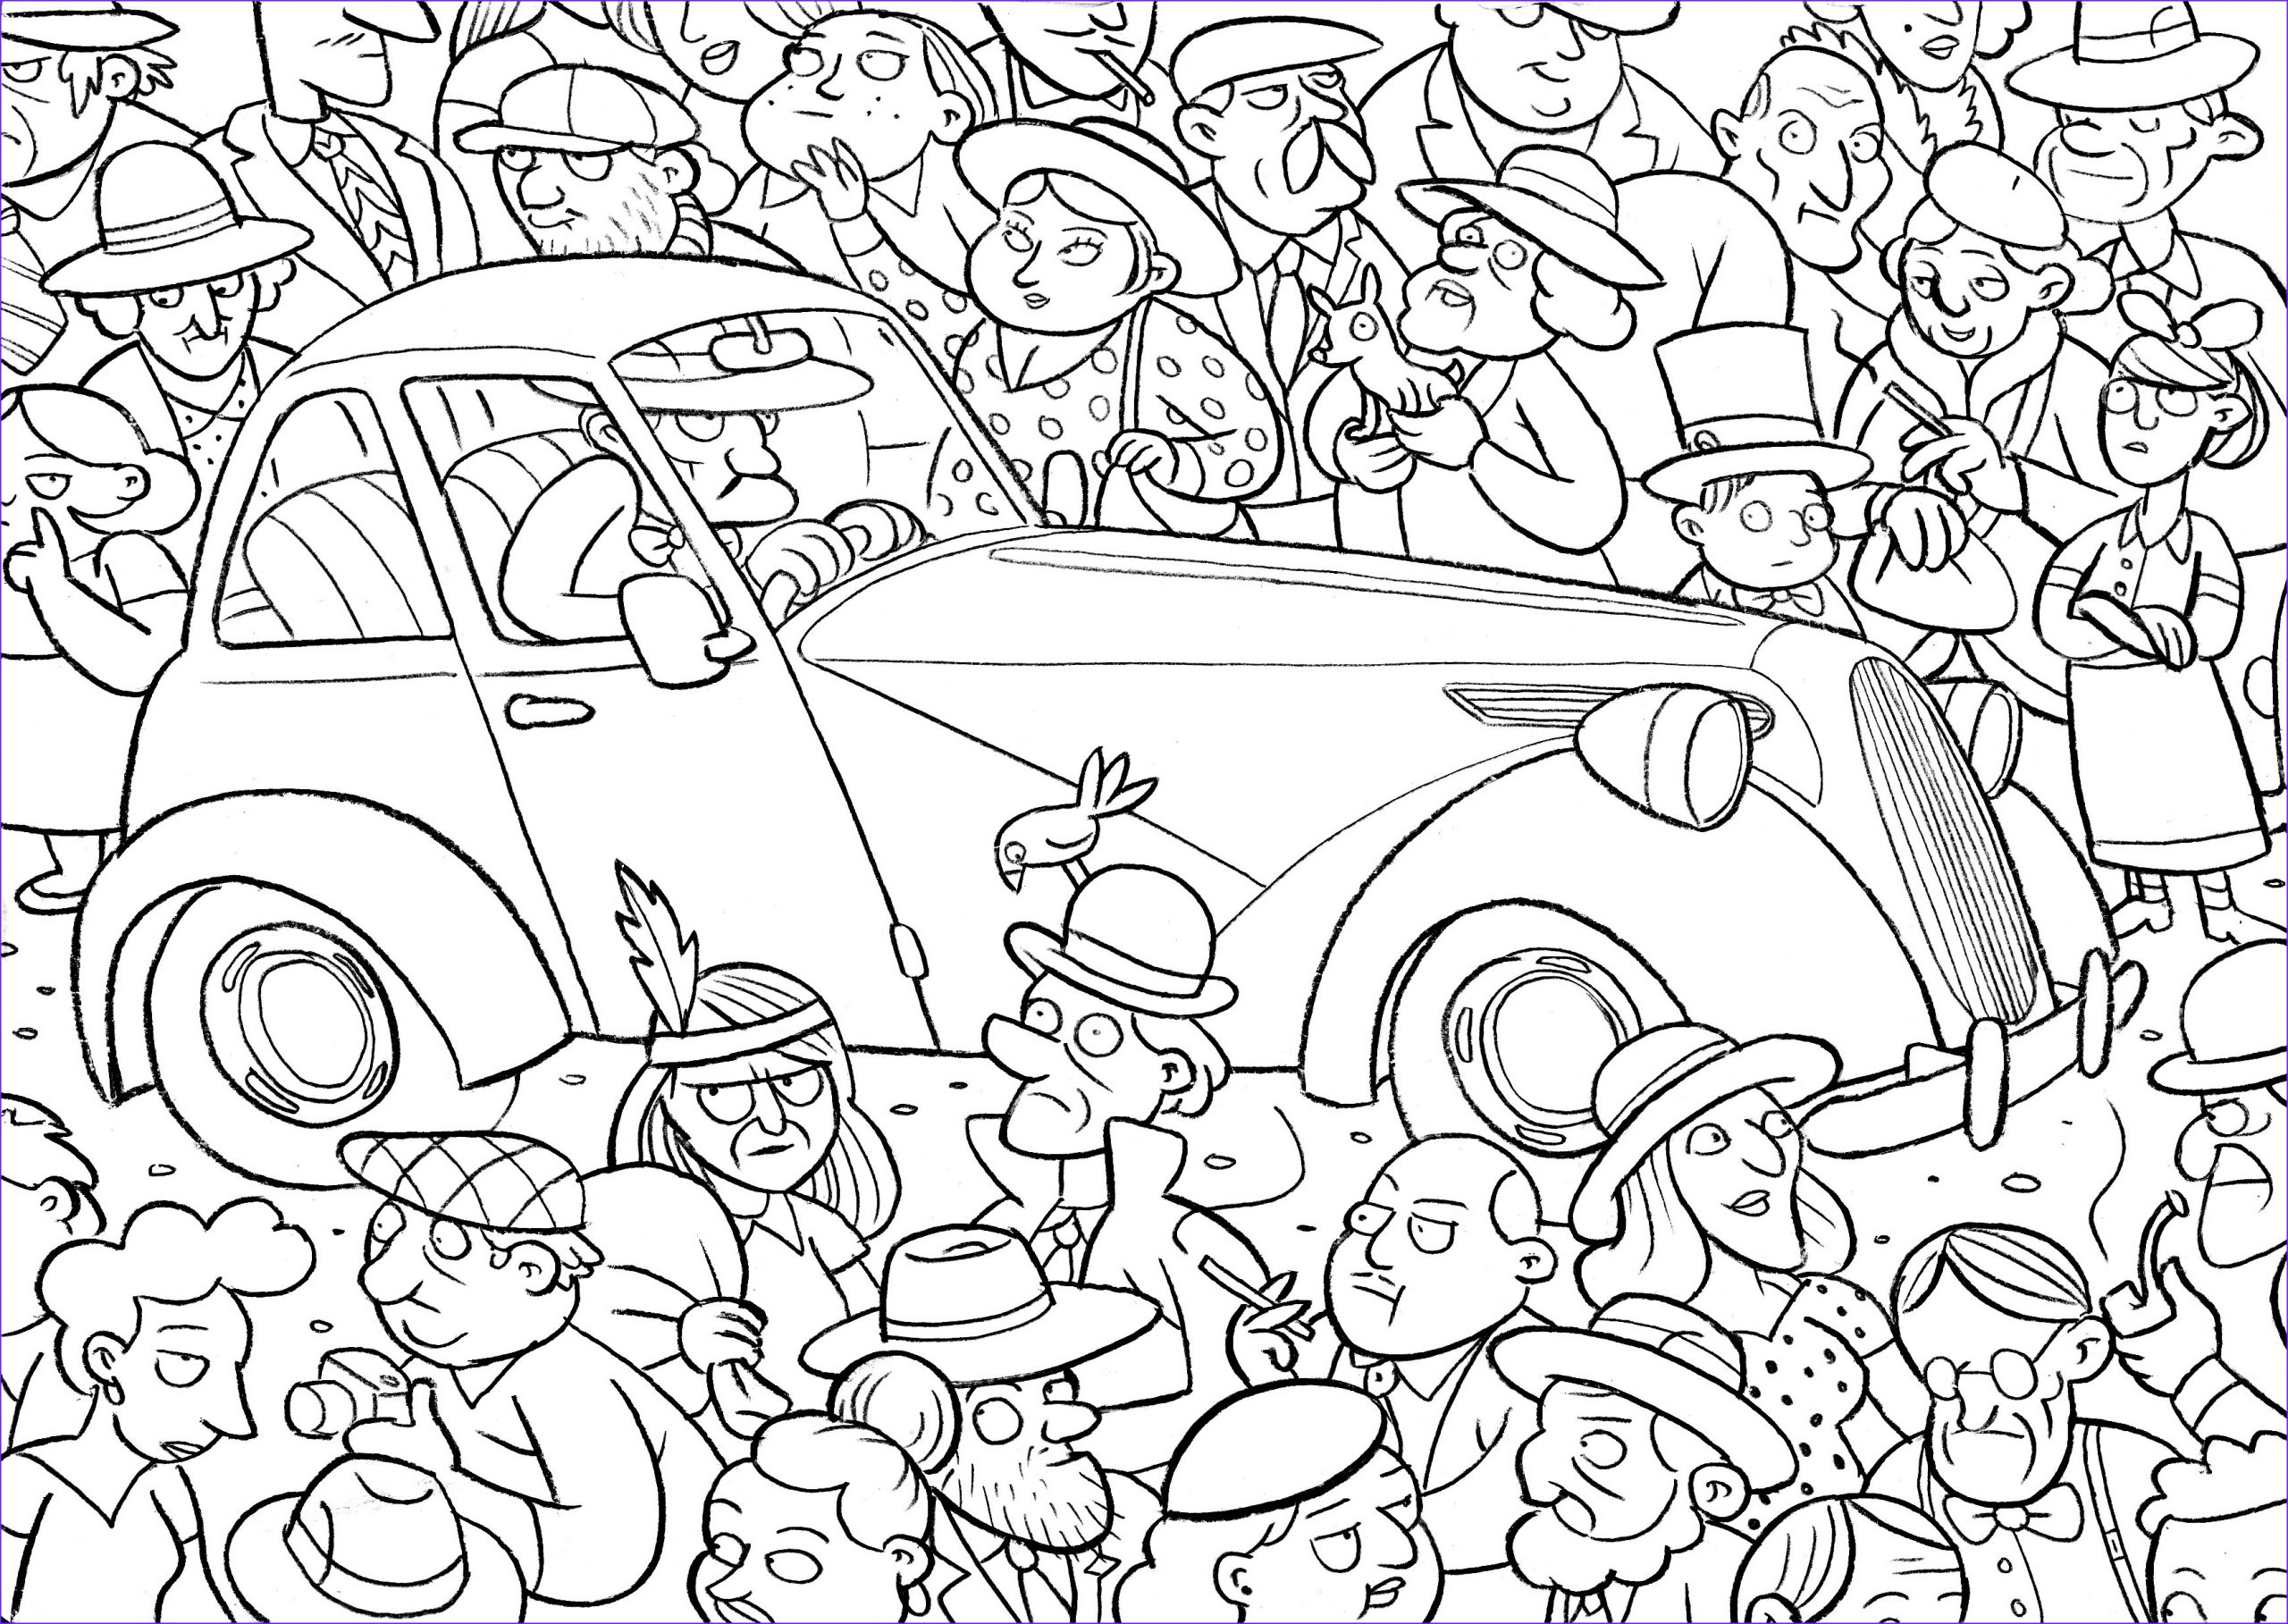 Dementia Coloring Book Unique Gallery 28 Coloring Pages for Dementia Patients Collection